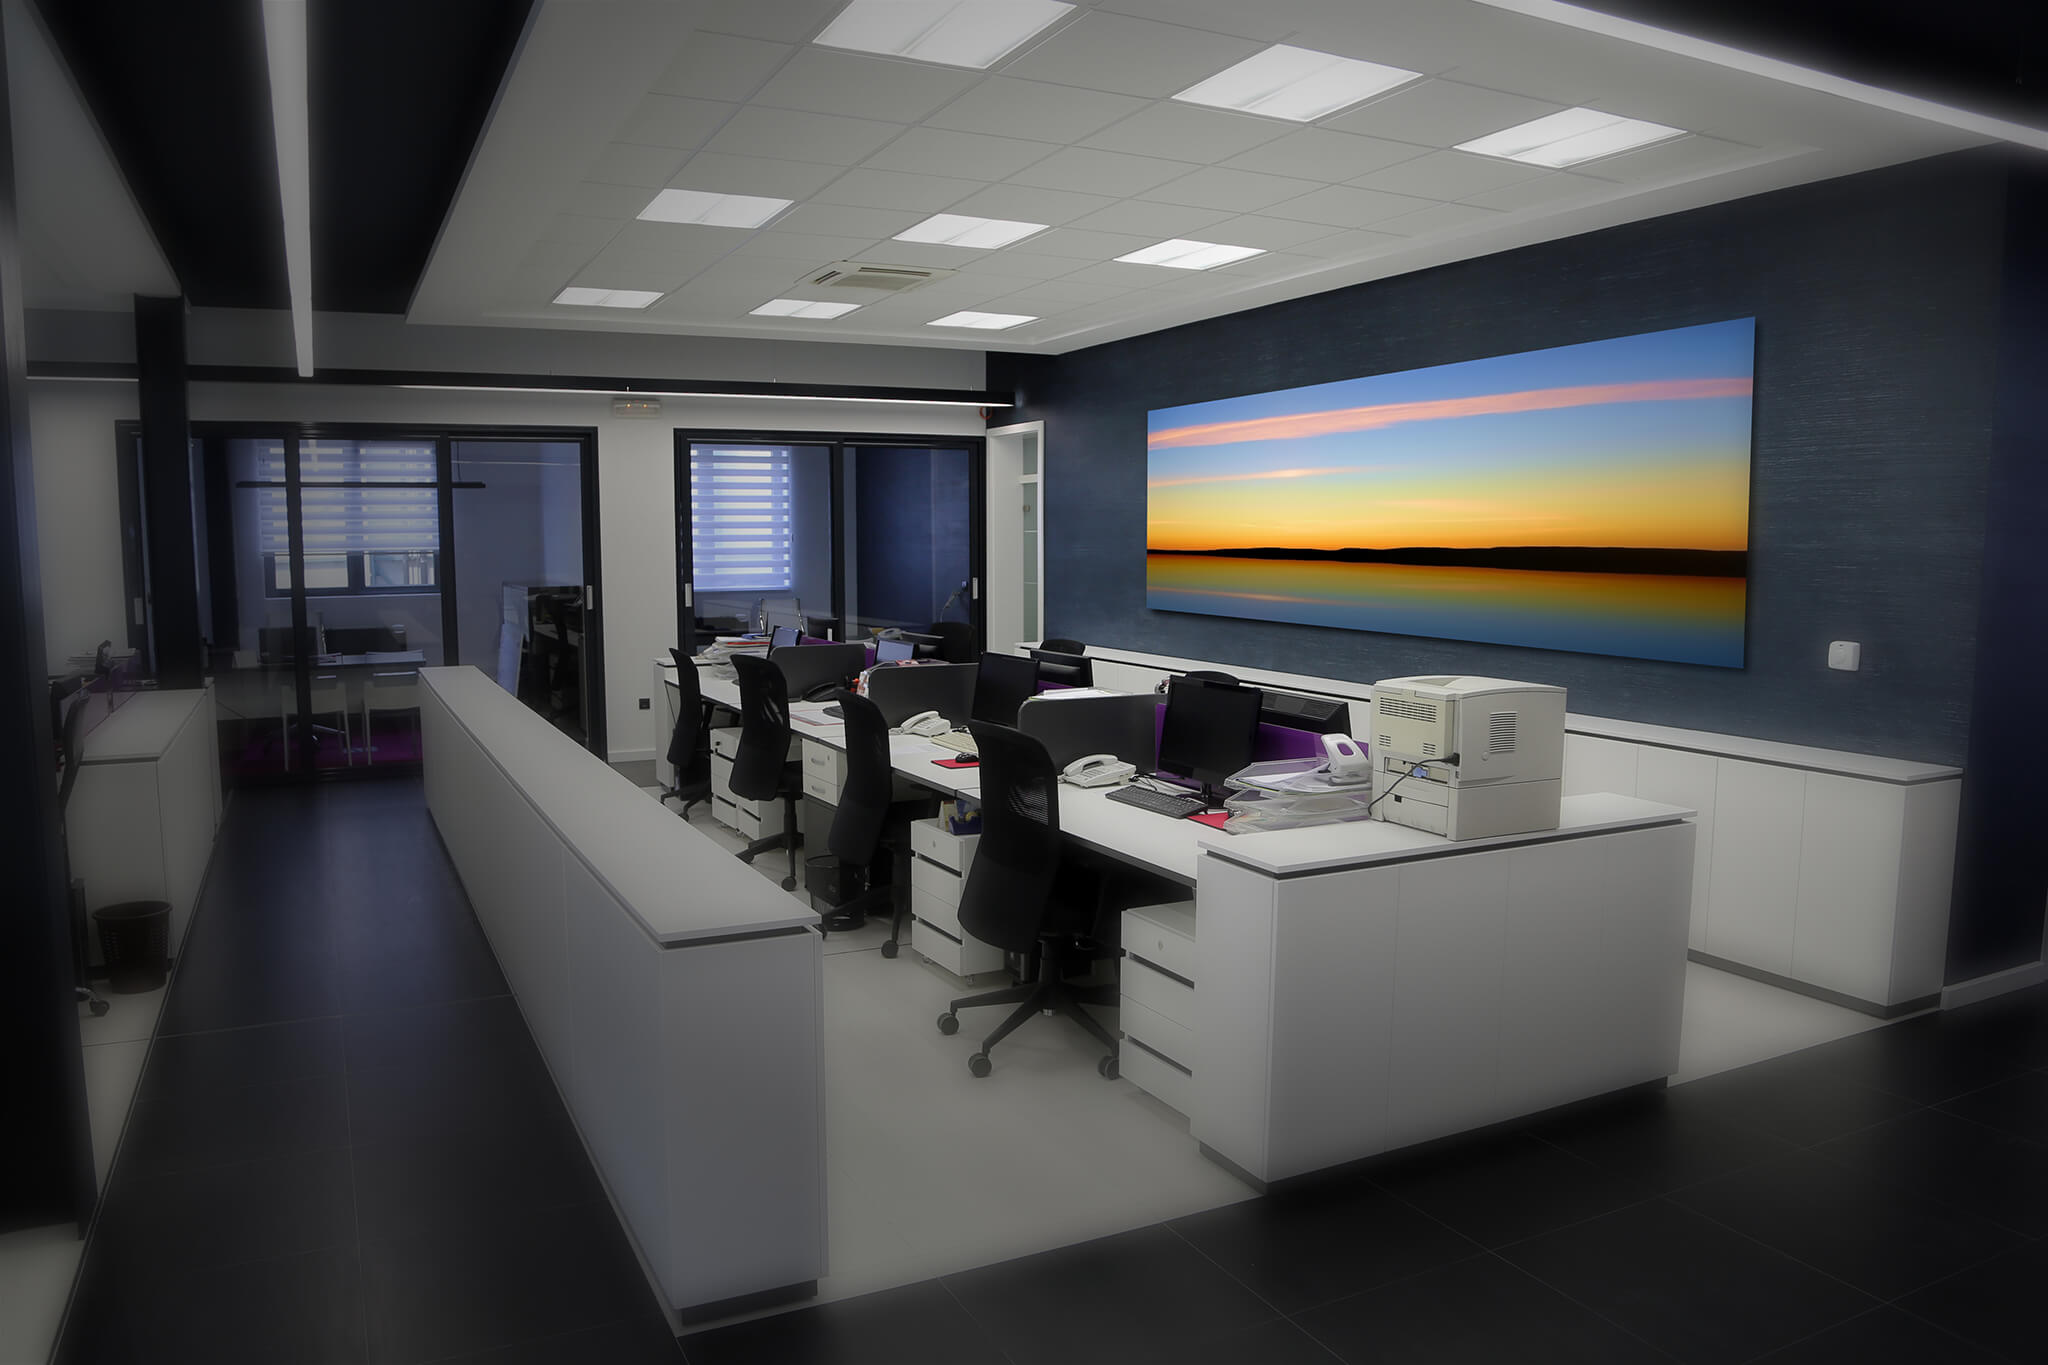 Incroyable Large Pano Office Artwork